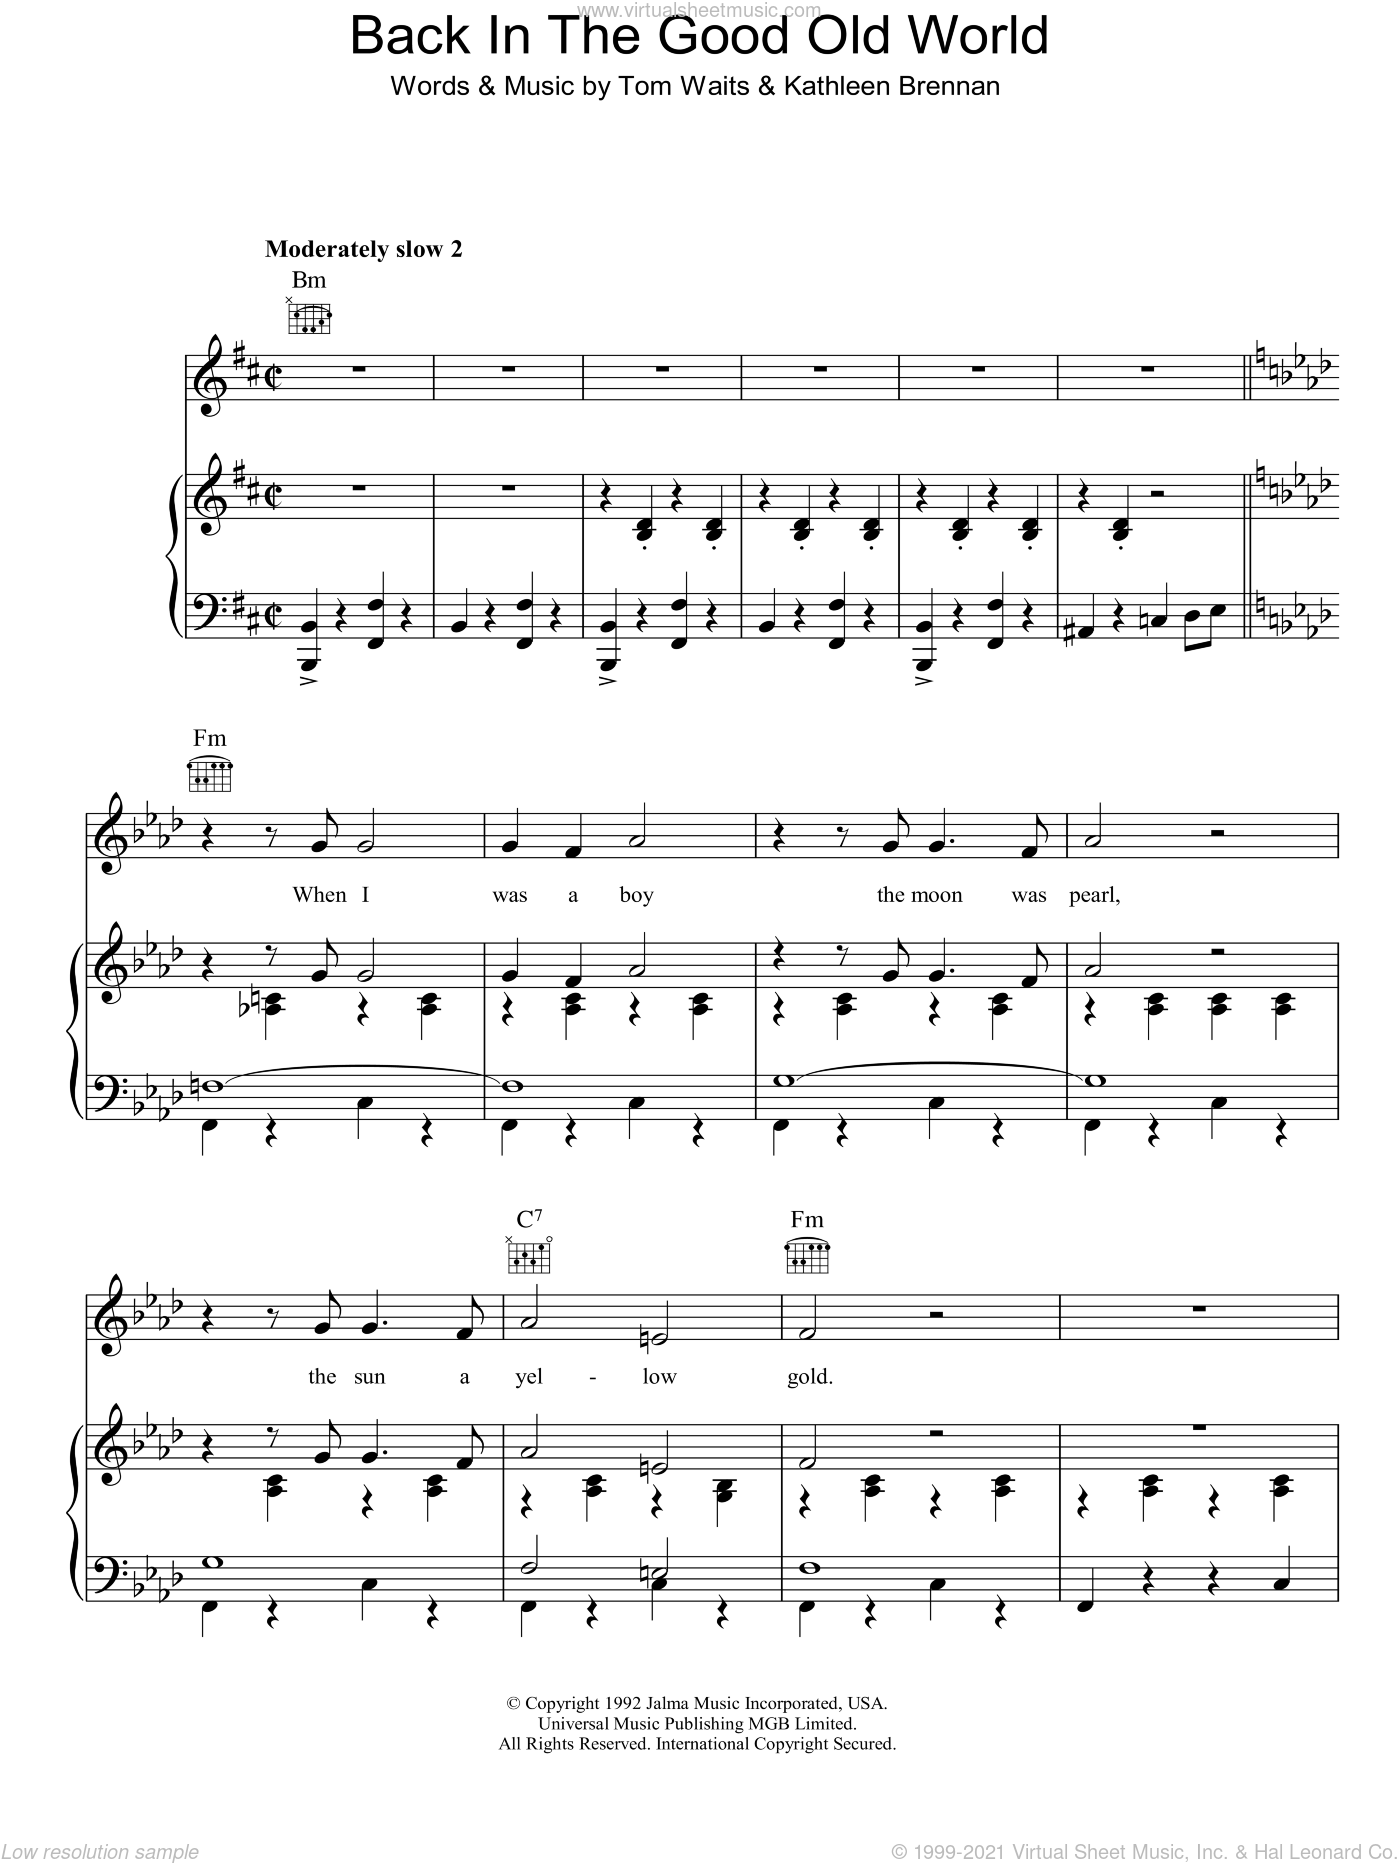 Back In The Good Old World sheet music for voice, piano or guitar by Kathleen Brennan and Tom Waits. Score Image Preview.